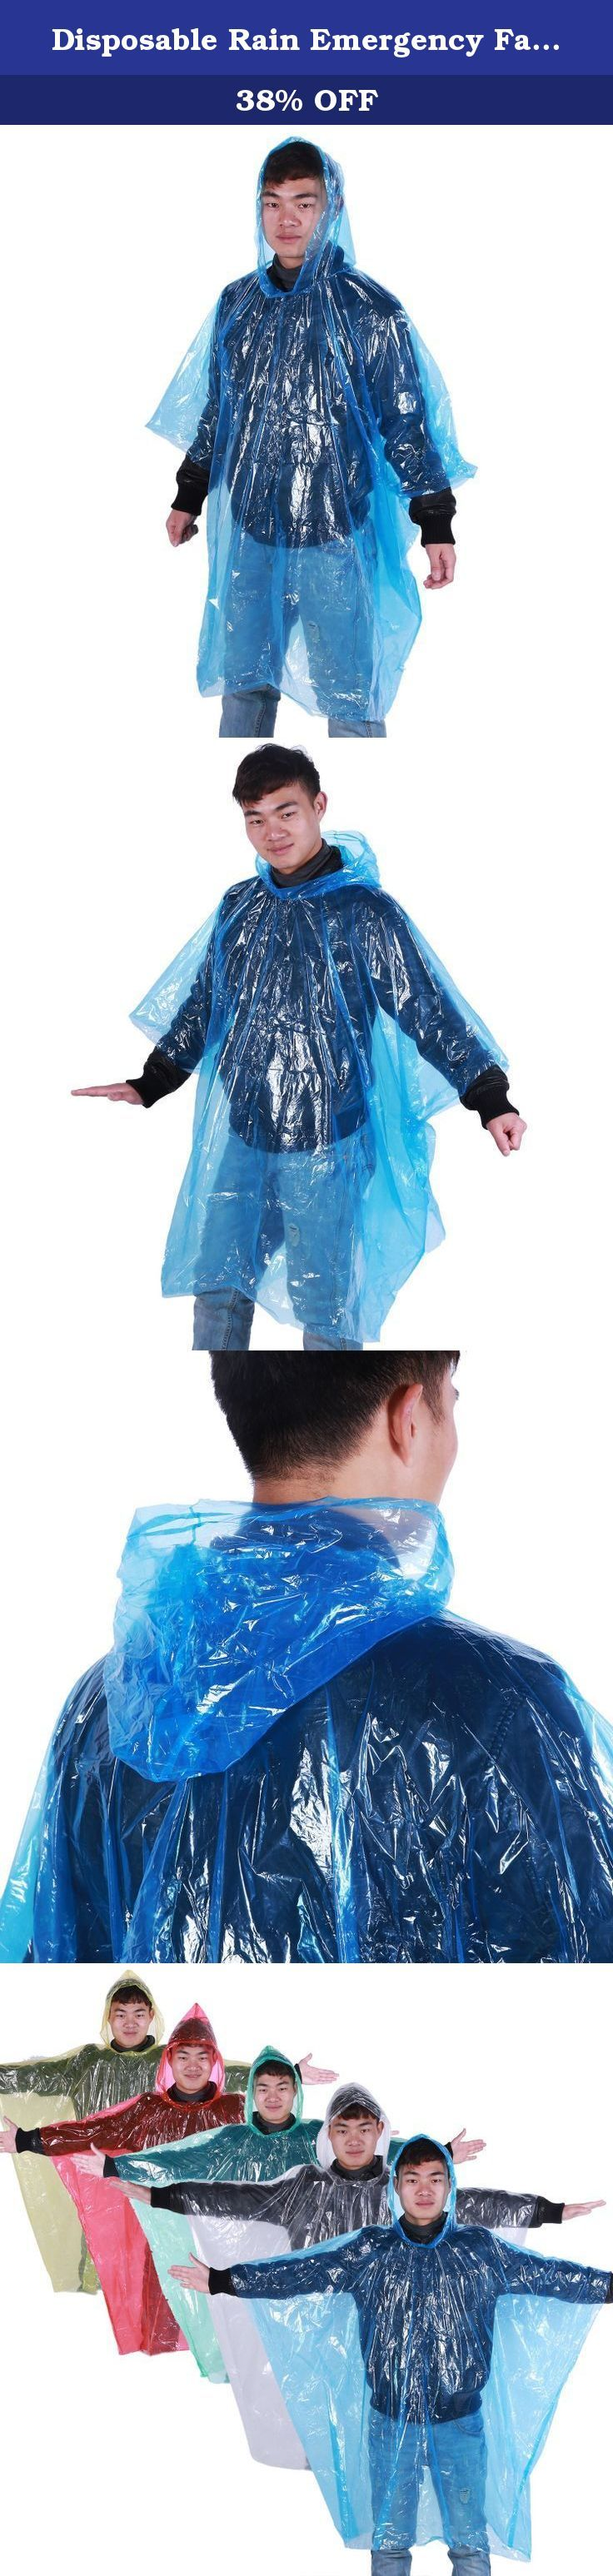 Disposable Rain Emergency Fashion Poncho for Adults - 20 Pack (Multi-Color) - Individually Wrapped. Keeps you protected on heavy rain days! Emergency Poncho, Emergency Rain Gear, Weather Protection. Lightweight ponchos, Compact easy storage, fits in you pocket or even in your wallet. Perfect for your emergency kit, camping, or any outdoor outing with family and friends. One size fit all.